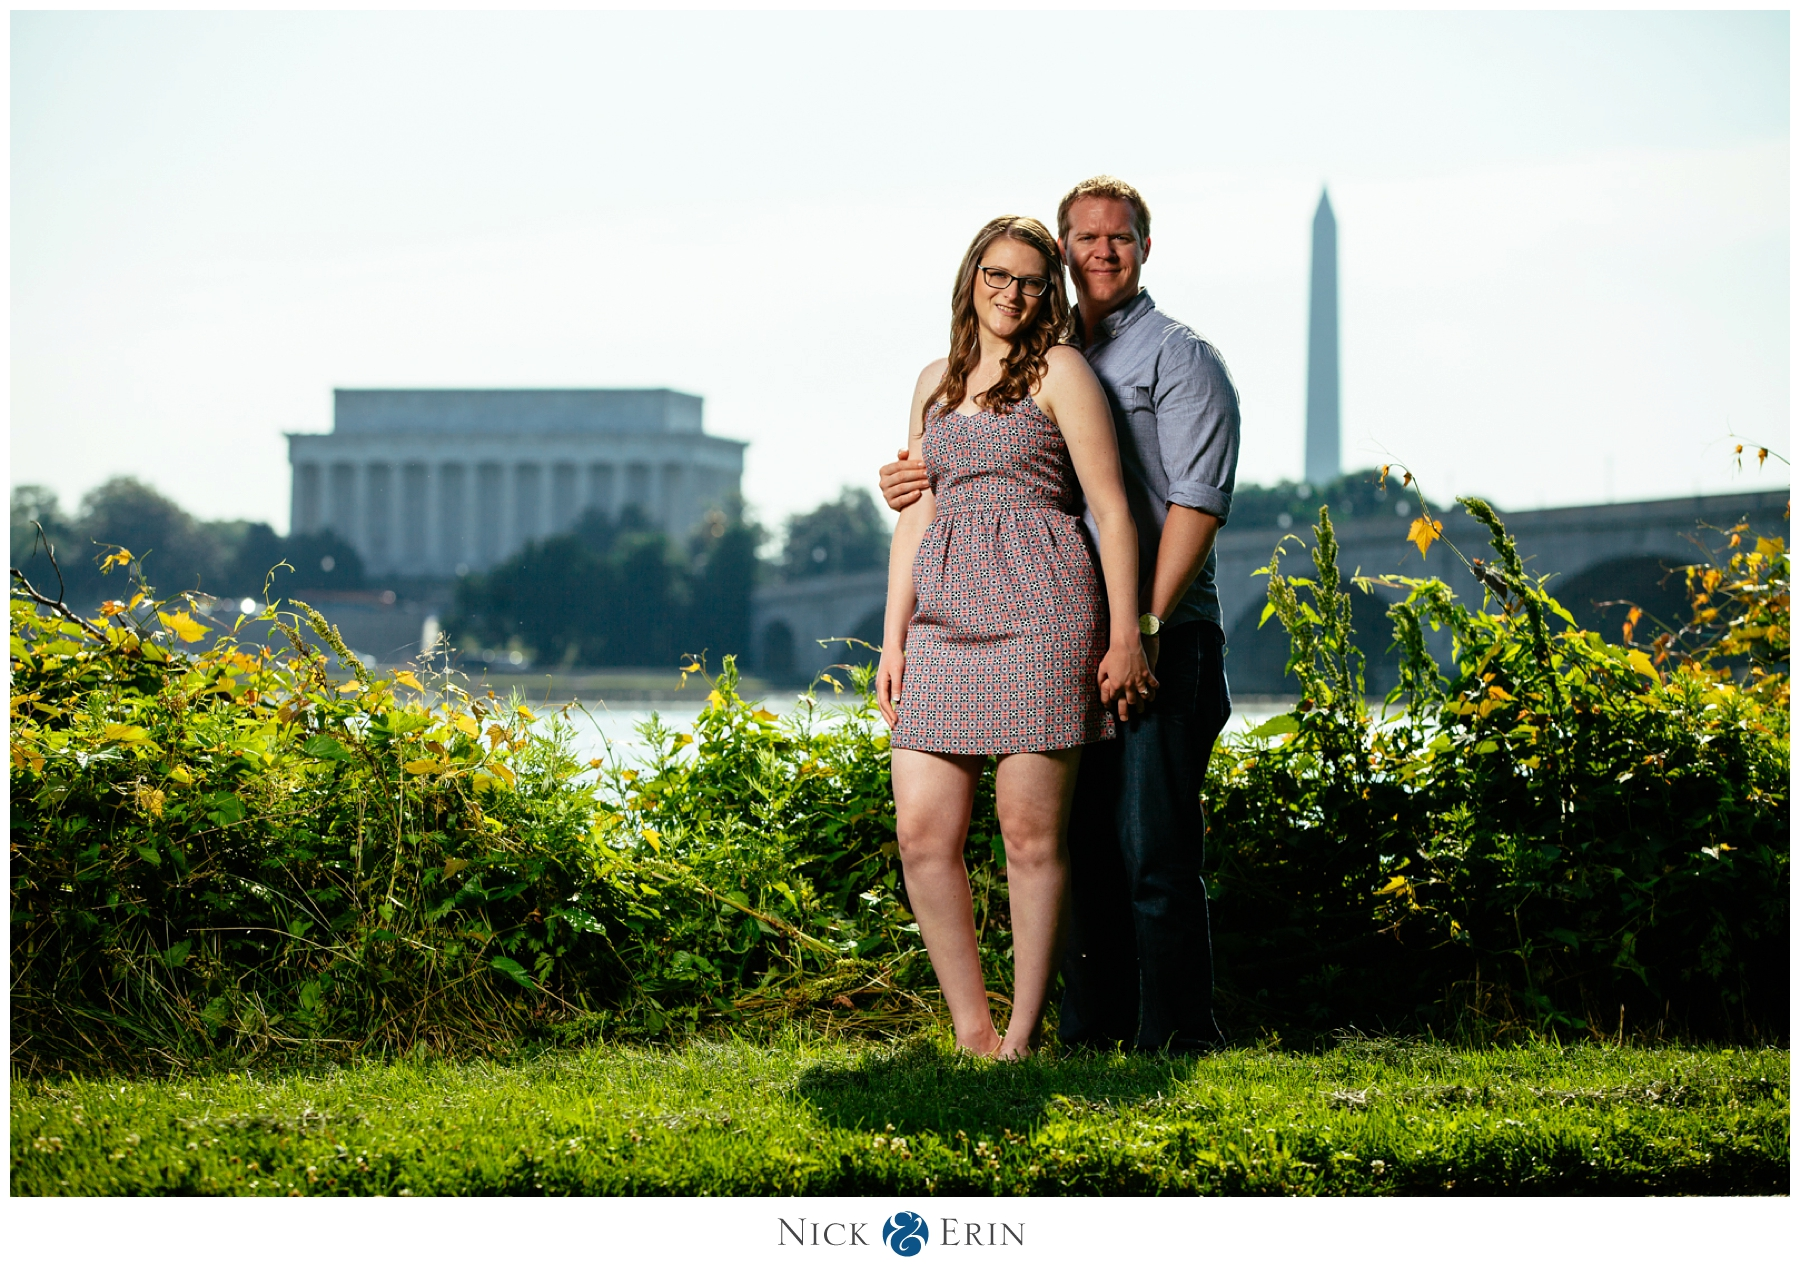 Donner_Photography_Washington DC Engagement_Katie & Chris_0010